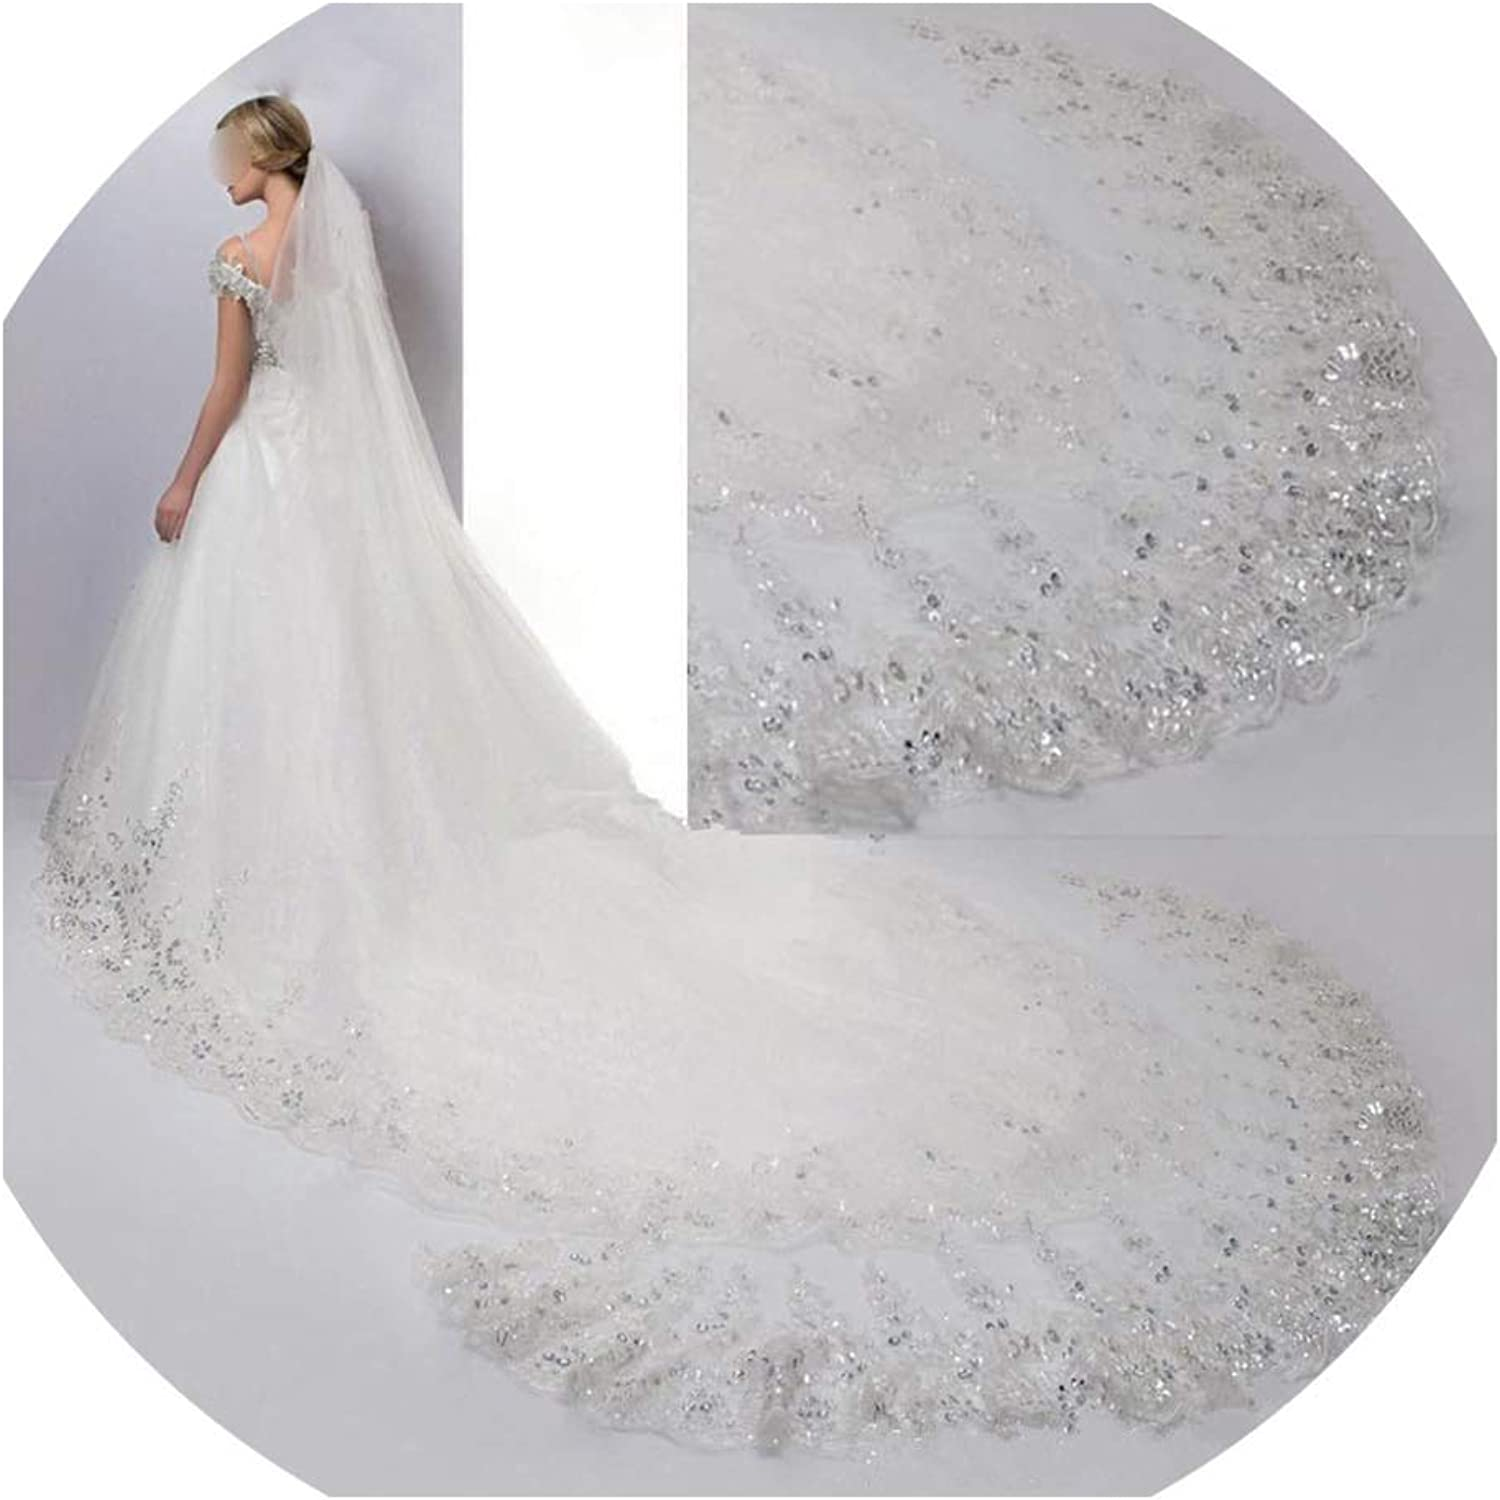 Elegant Wedding Veil Long Cathedral One Layer Appliques Edge Sequined Soft Bridal Veils With Comb 3 Metros,Ivory,300cm